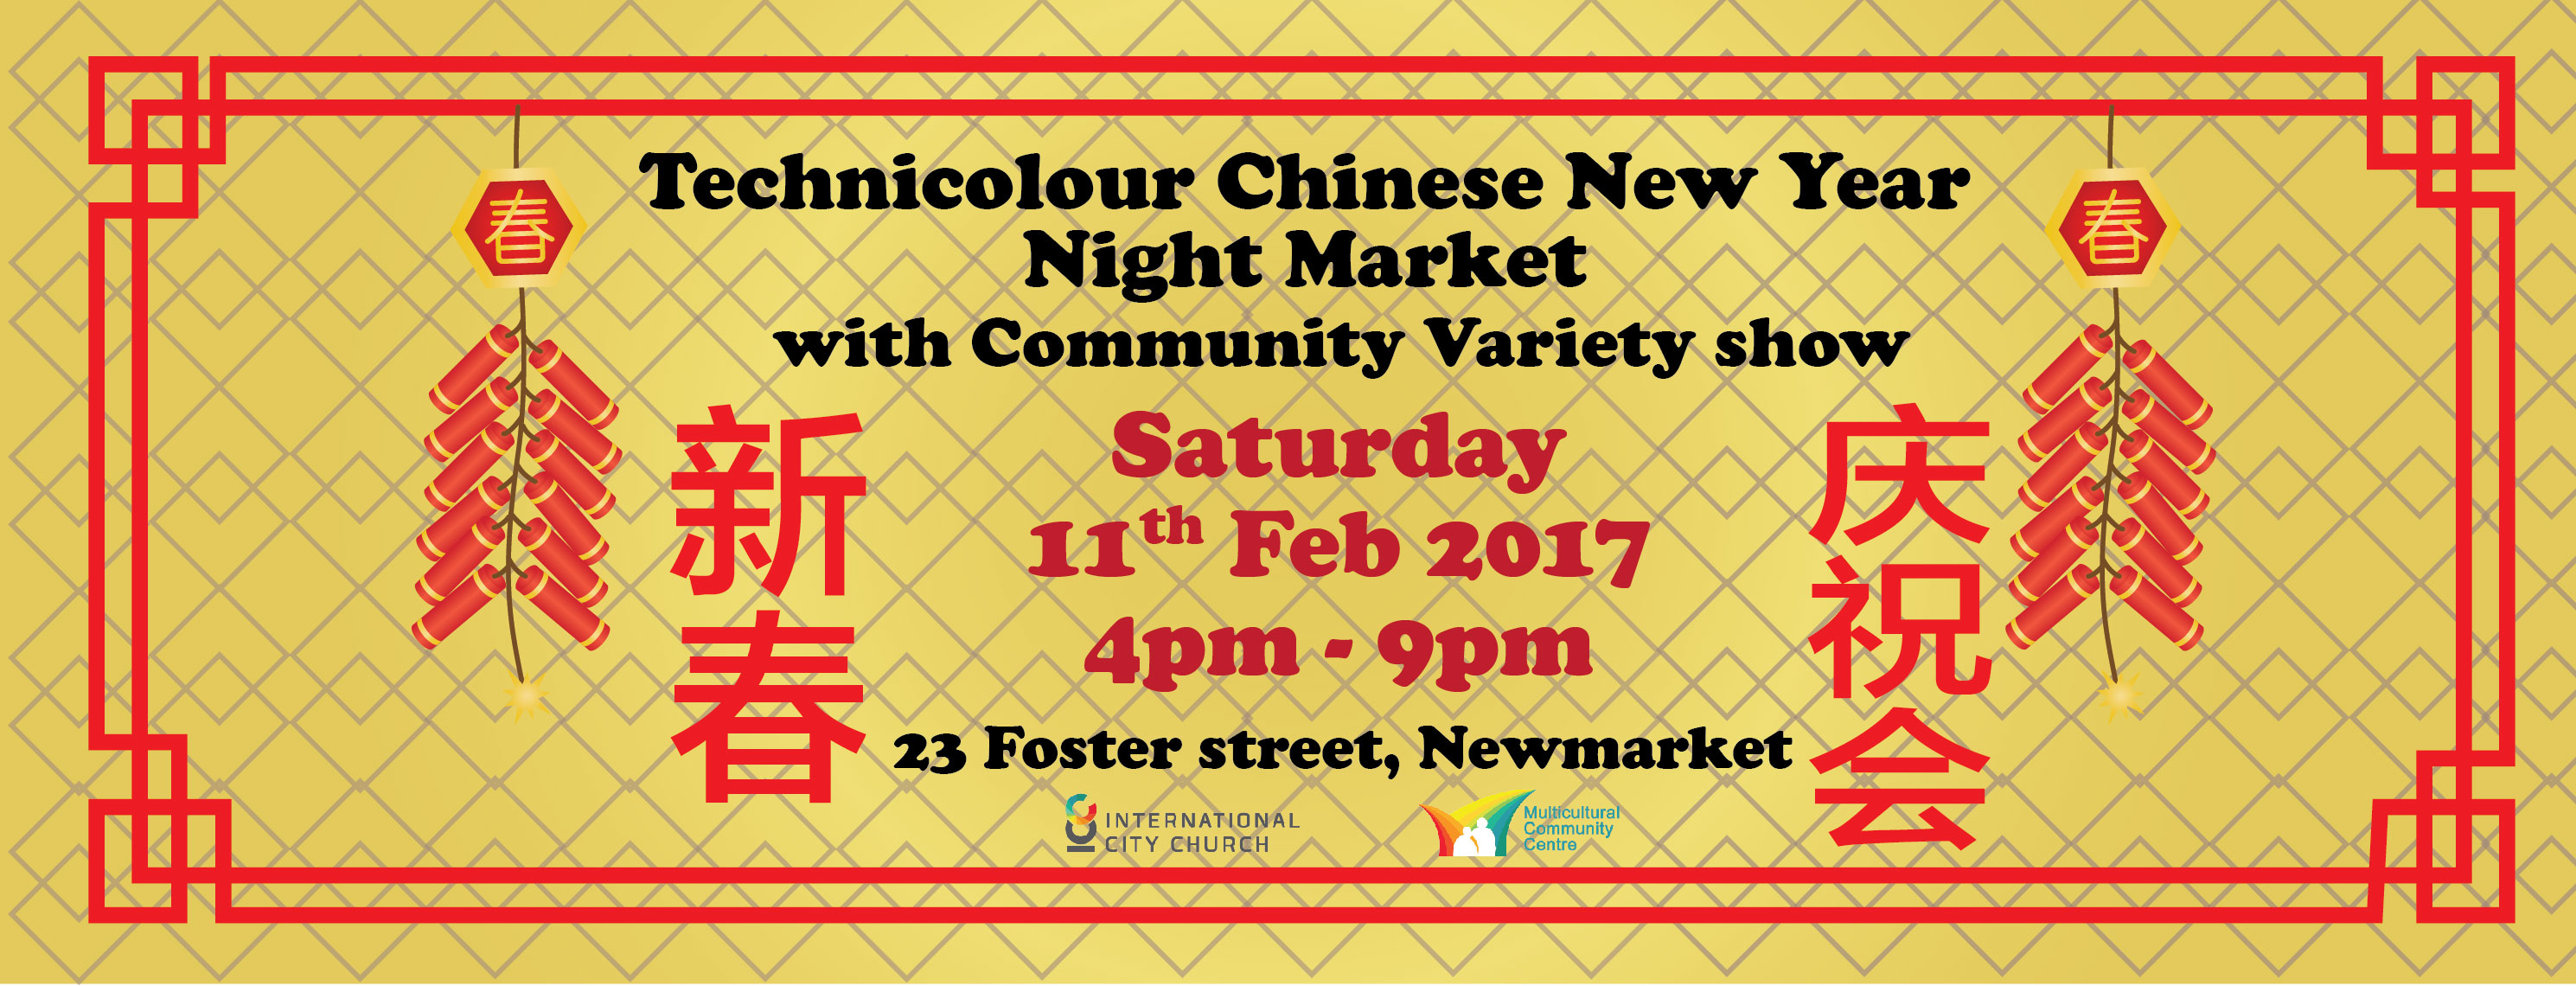 Technicolour Chinese New Year Night Market - Multicultural Community ...